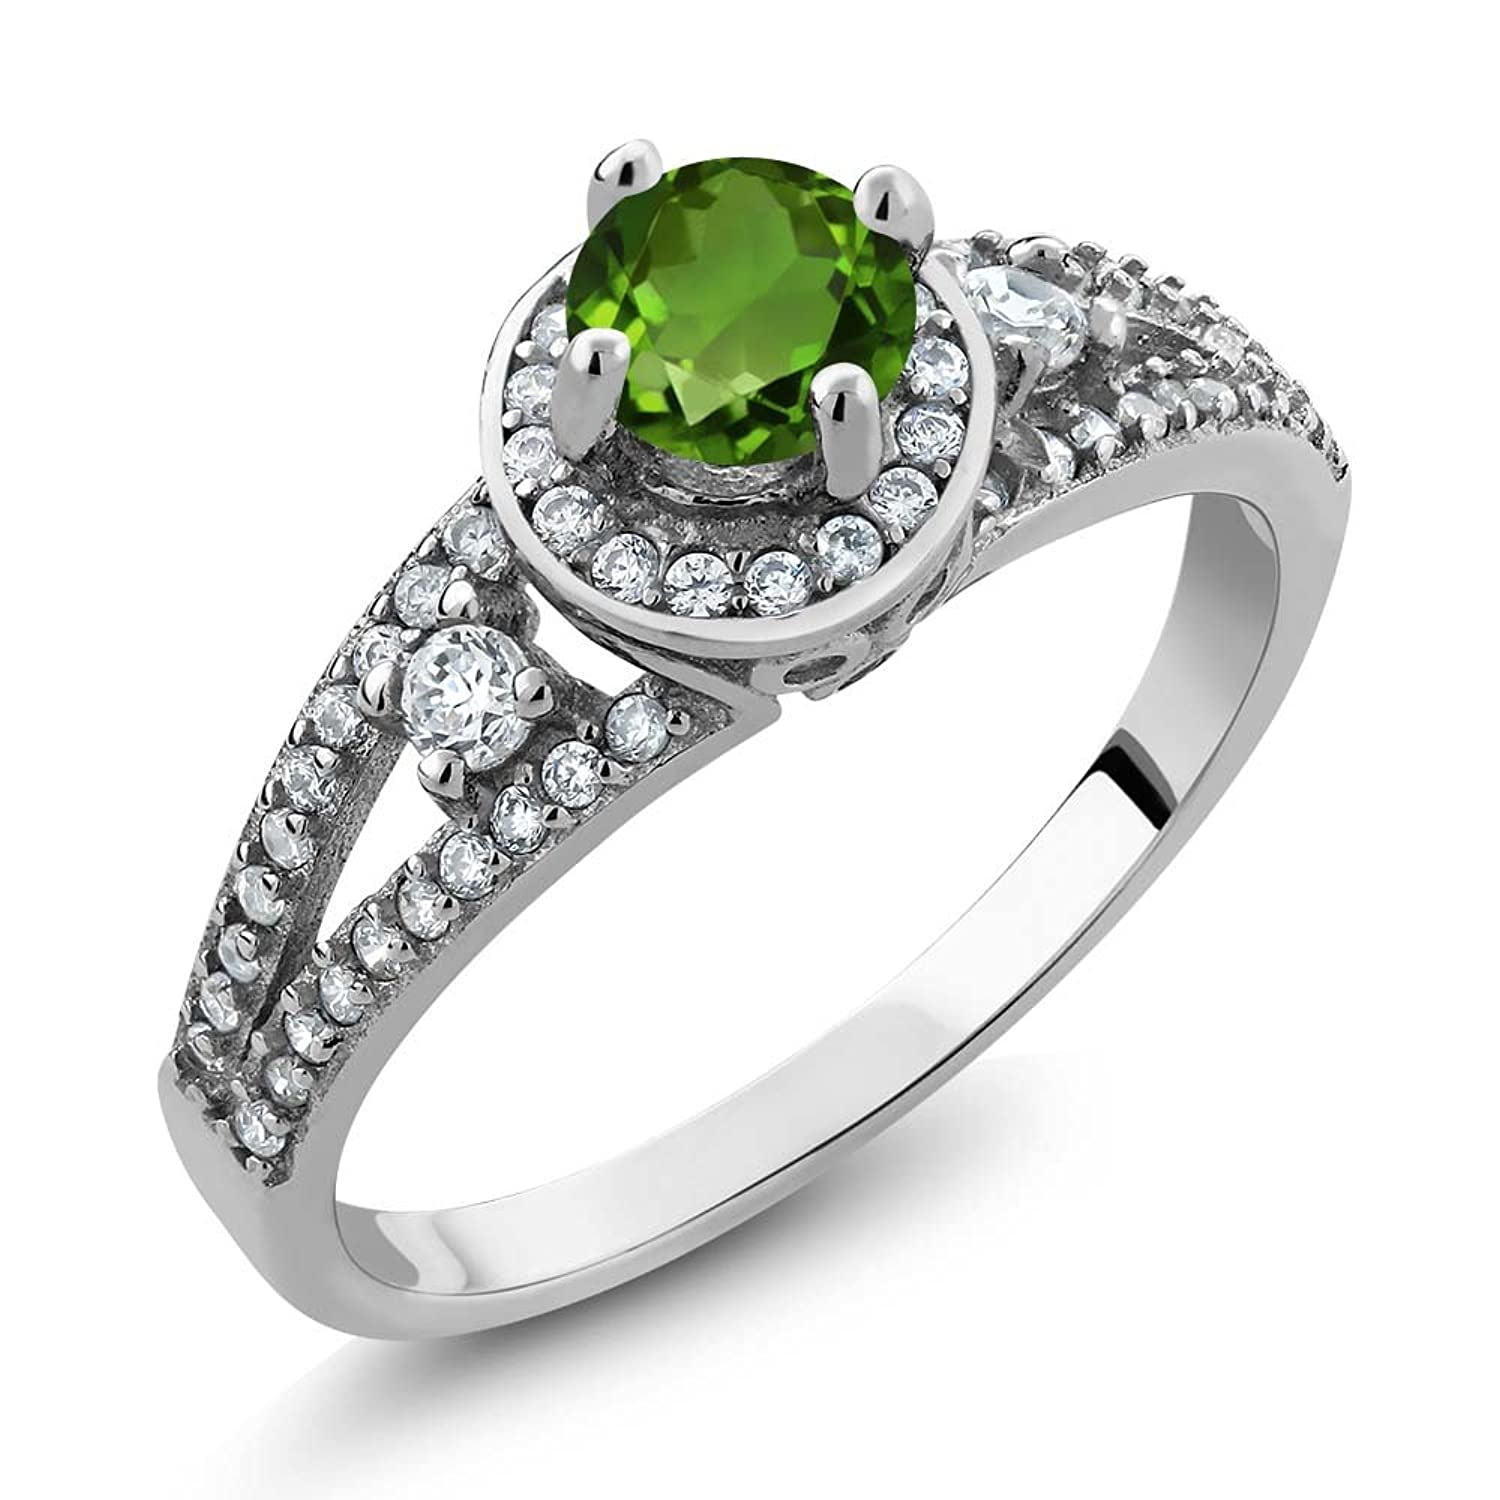 1.44 Ct Round Green Chrome Diopside 925 Sterling Silver Women's Ring (Available in size 5, 6, 7, 8, 9)